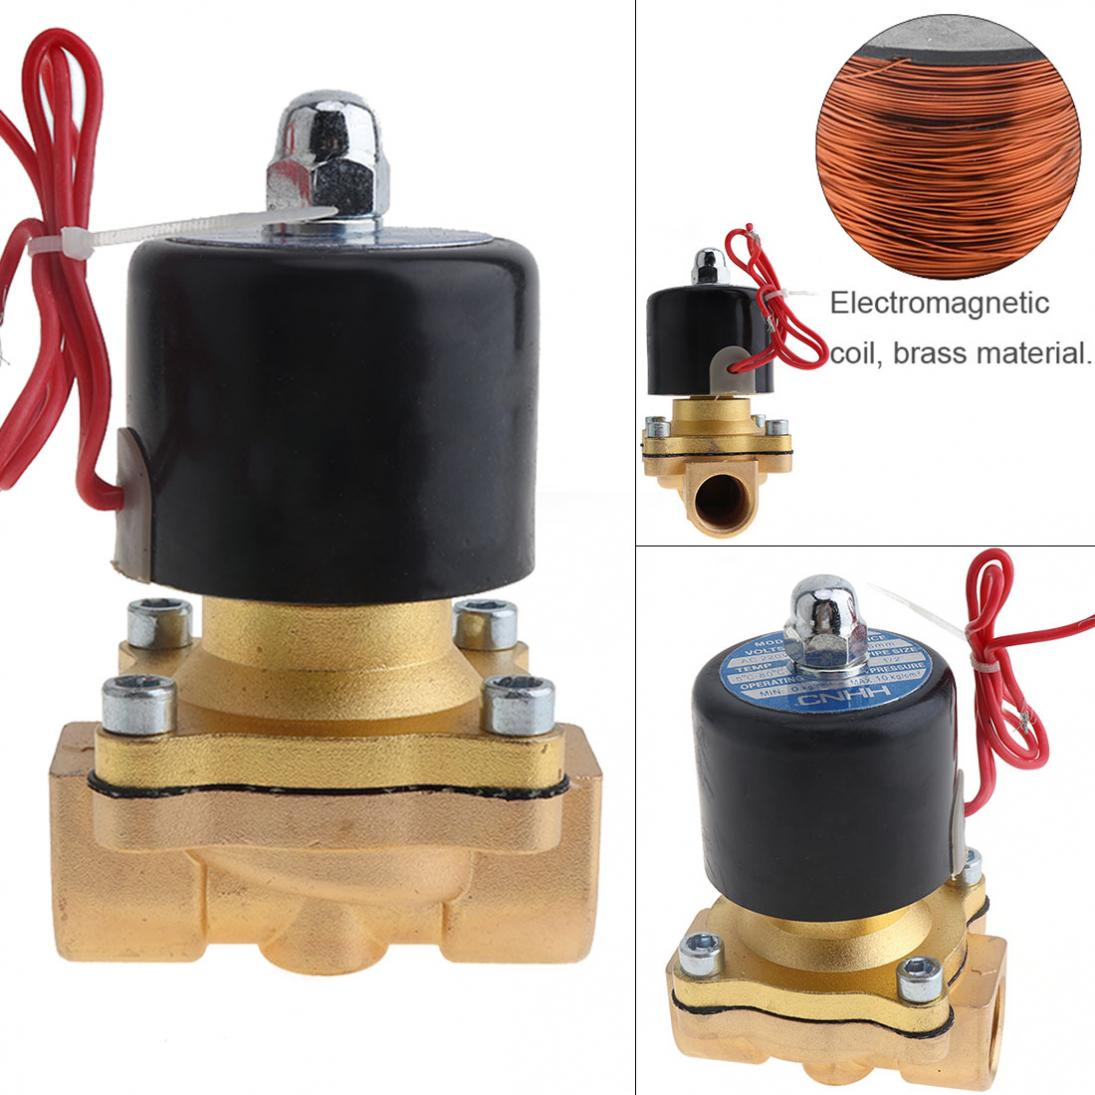 1-2-039-039-DC12-Brass-Electric-Solenoid-Valve-N-C-Gas-Water-Fuel-Air-Solid-Coil-New thumbnail 5